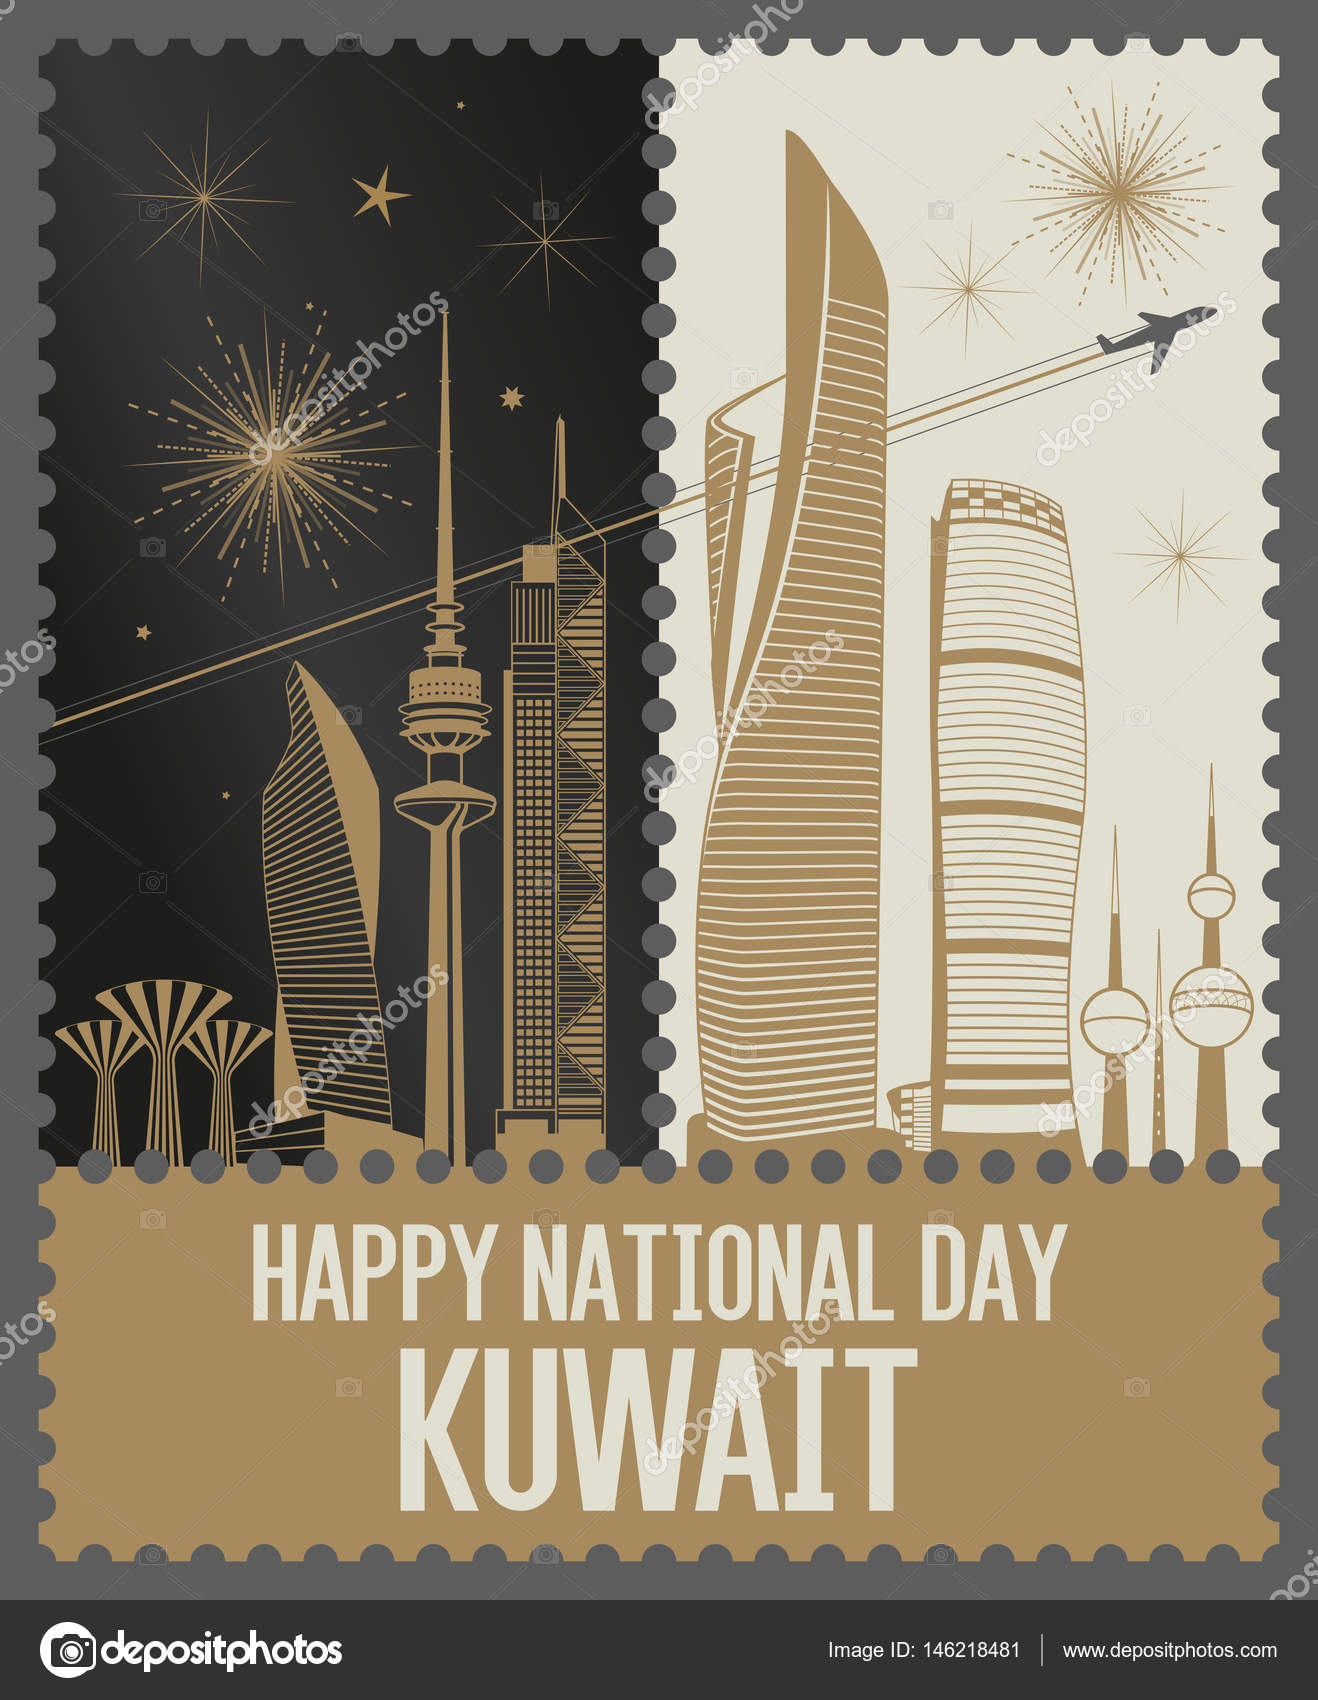 golden day and night kuwait national day fireworks stamps stock rh depositphotos com Fireworks White Background American Fireworks